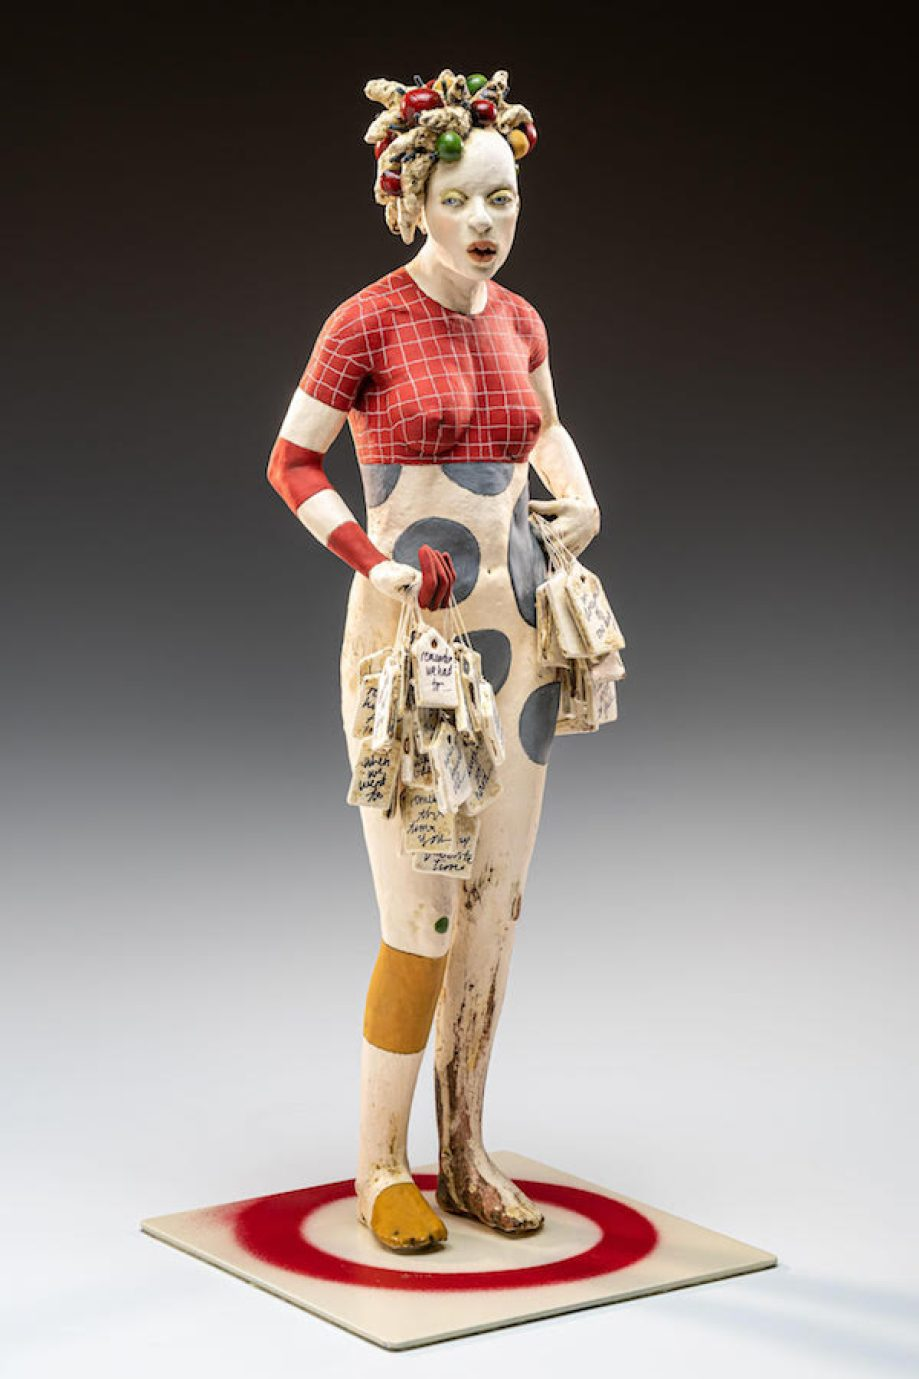 A sculpture of a woman in red and white